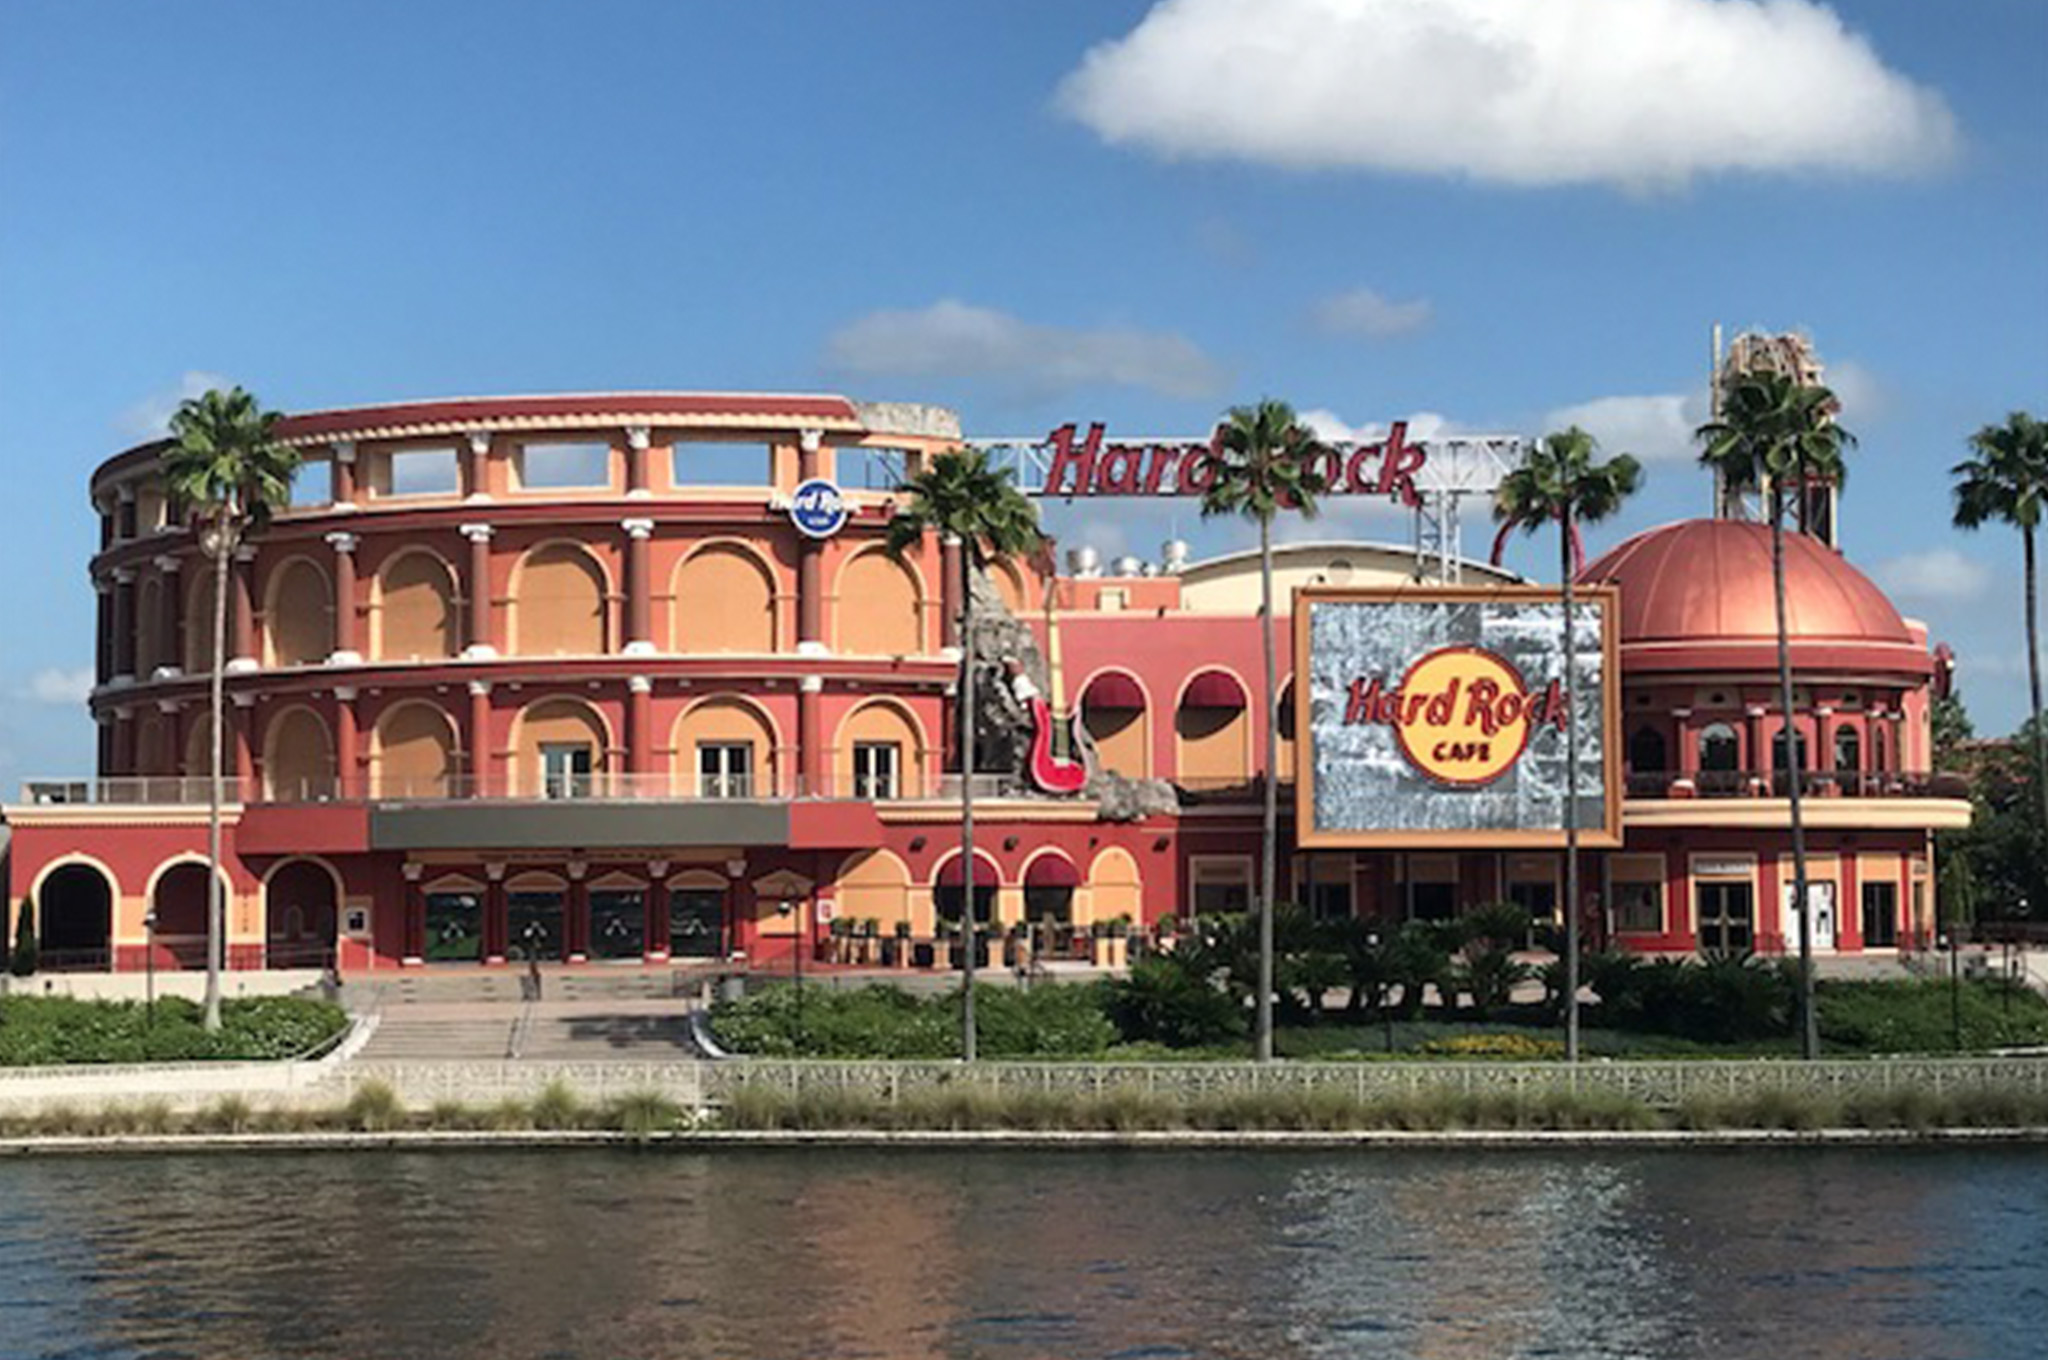 Hard Rock Cafe on the water